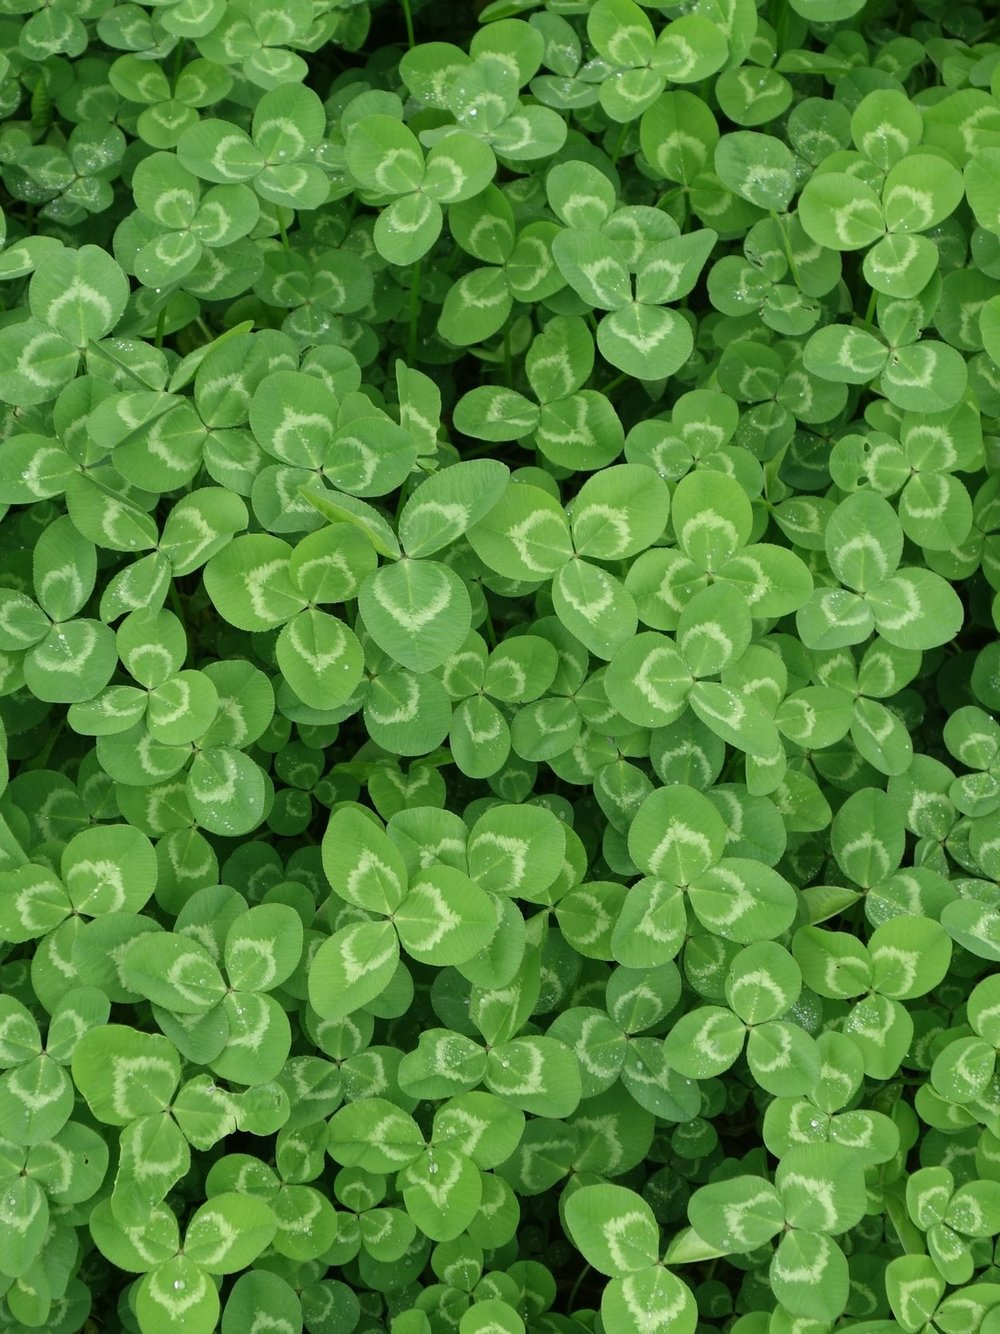 """Shamrock - The word shamrock seamróg comes from the Irish word for clover seamair, and óg """"young"""" or """"little"""". It is often mistaken with the four-leaf clover, a confusion caused by phrases like """"the luck of the Irish"""" and the superstition that the four-leaf clover is the lucky shamrock to anyone who finds it.In the later part of the 18th century the shamrock took on a new nationalistic meaning as an emblem for militias. Cf Theobald Wolfe Tone. Far less politicized now, the shamrock is a registered trademark of the Irish government.Ireland. The shamrock was perhaps made famous by St. Patrick, the Patron Saint of Ireland."""